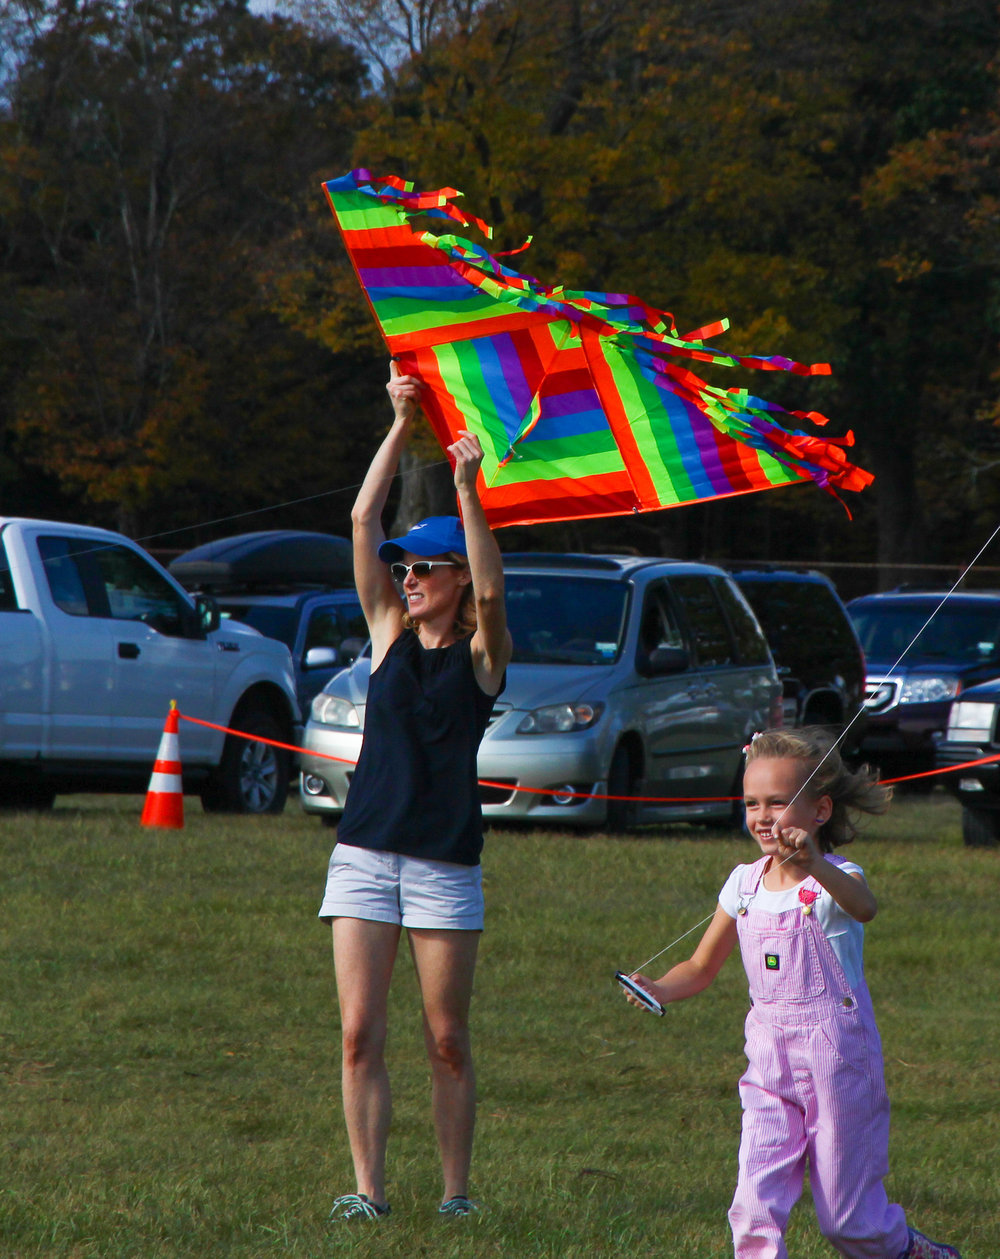 Family Fun Day - Kite Photo.jpg